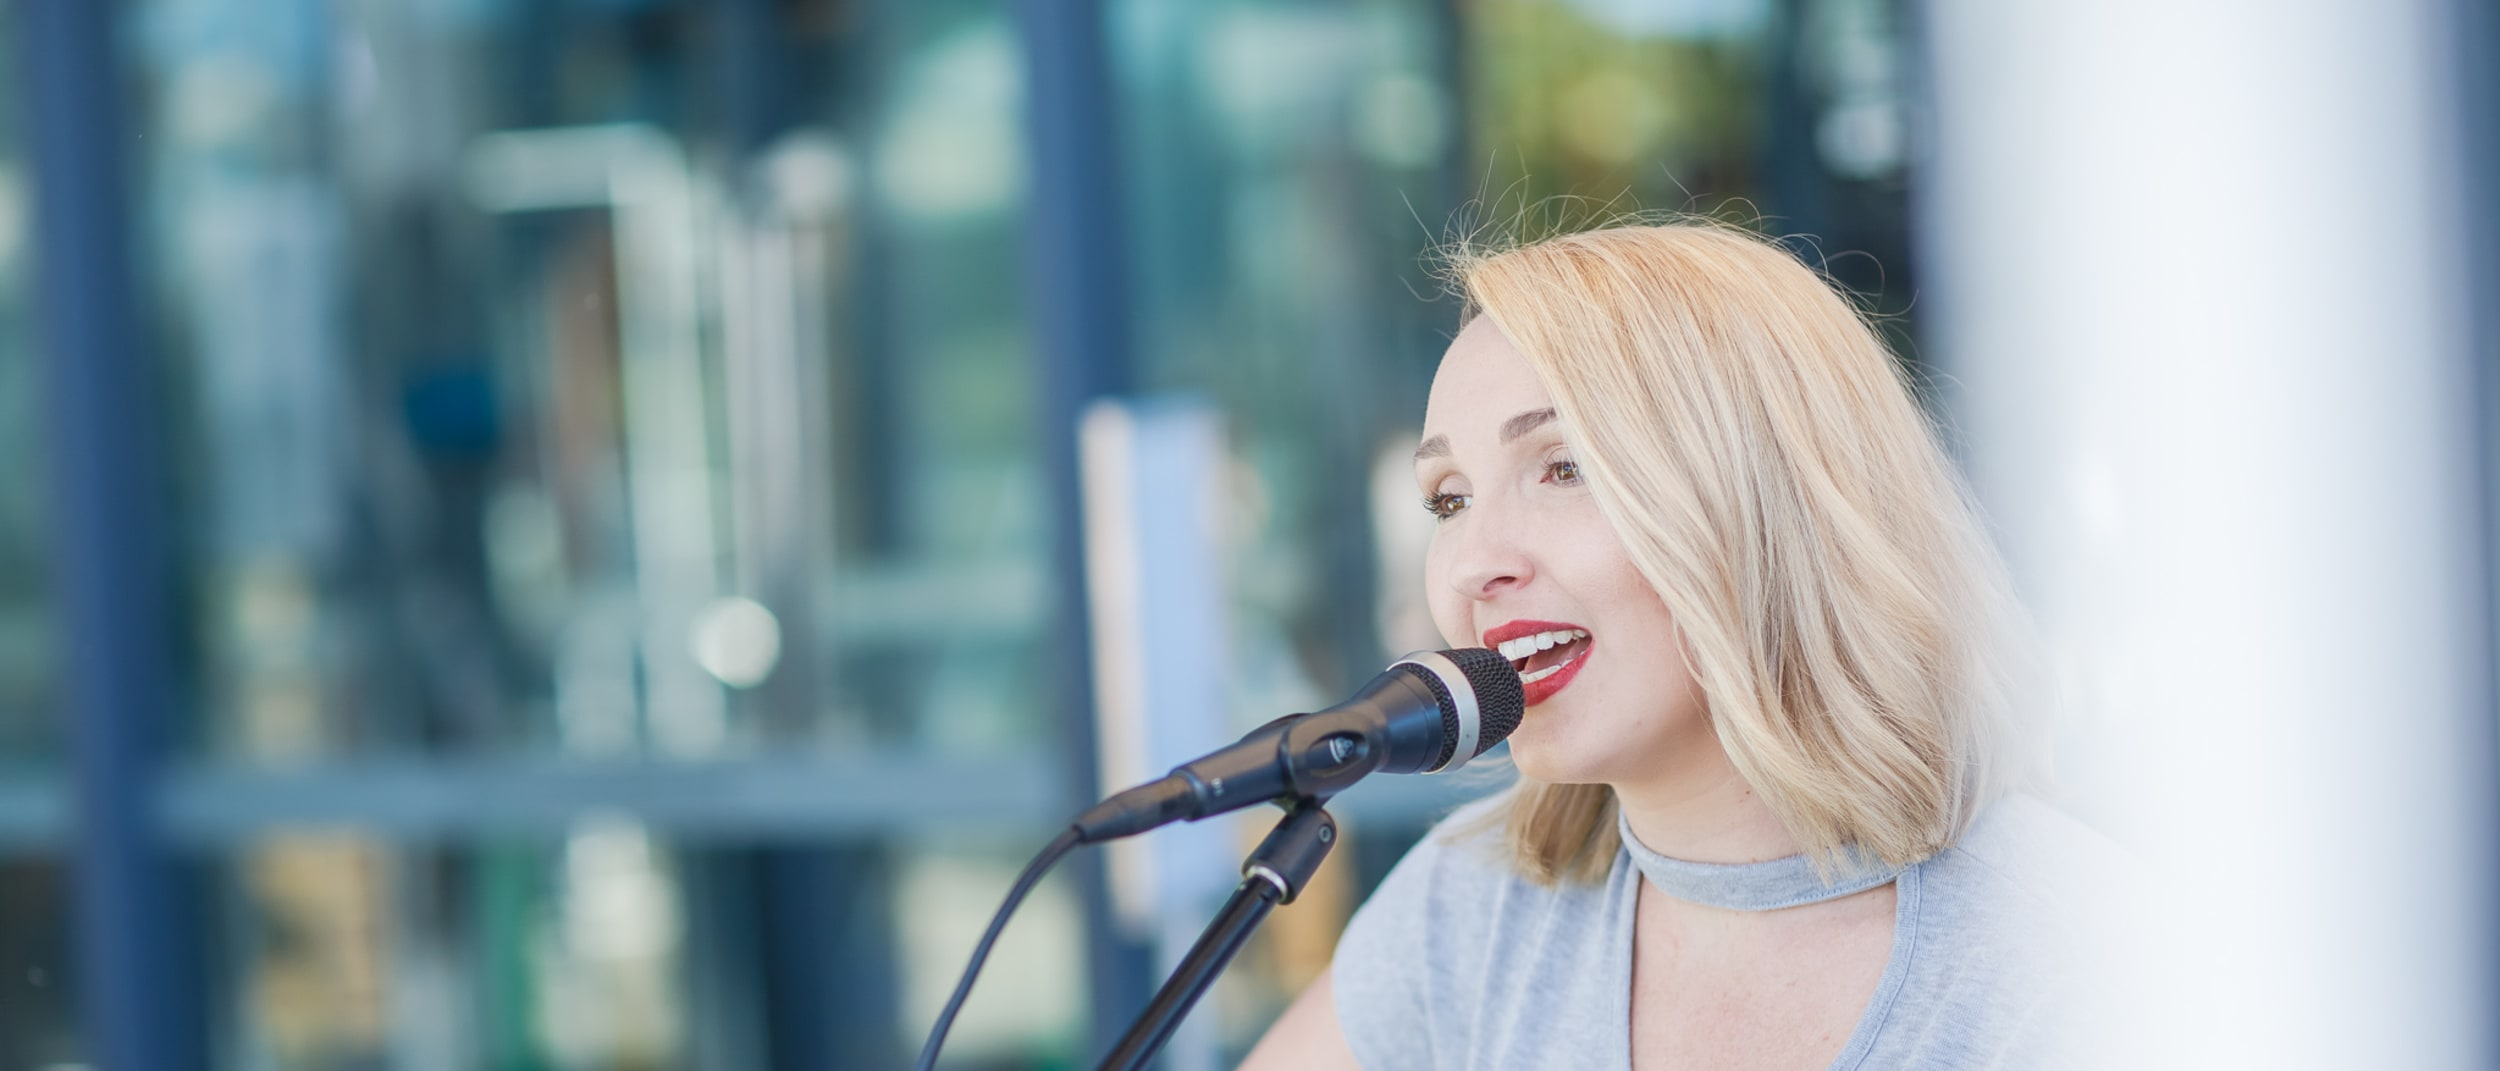 Weekly live music in the dining precinct